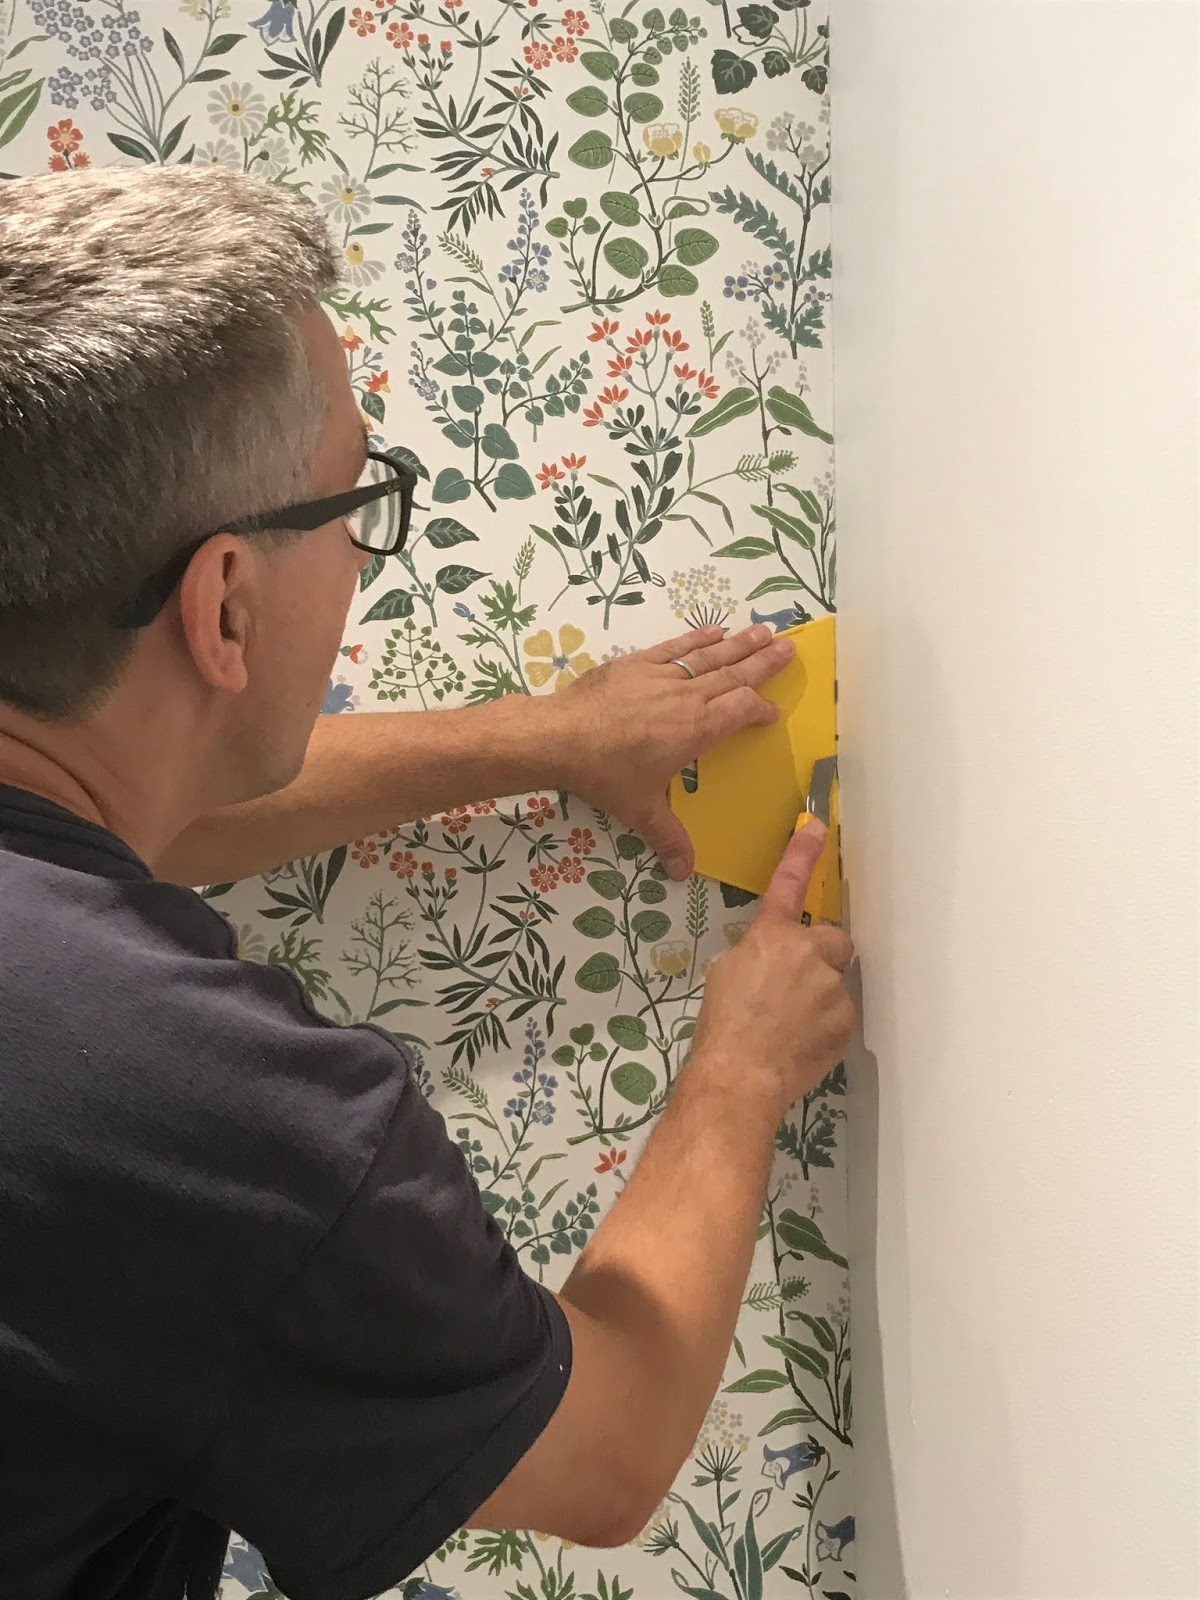 how to apply wallpaper around a corner, how to match wallpaper patterns, wallpaper installation